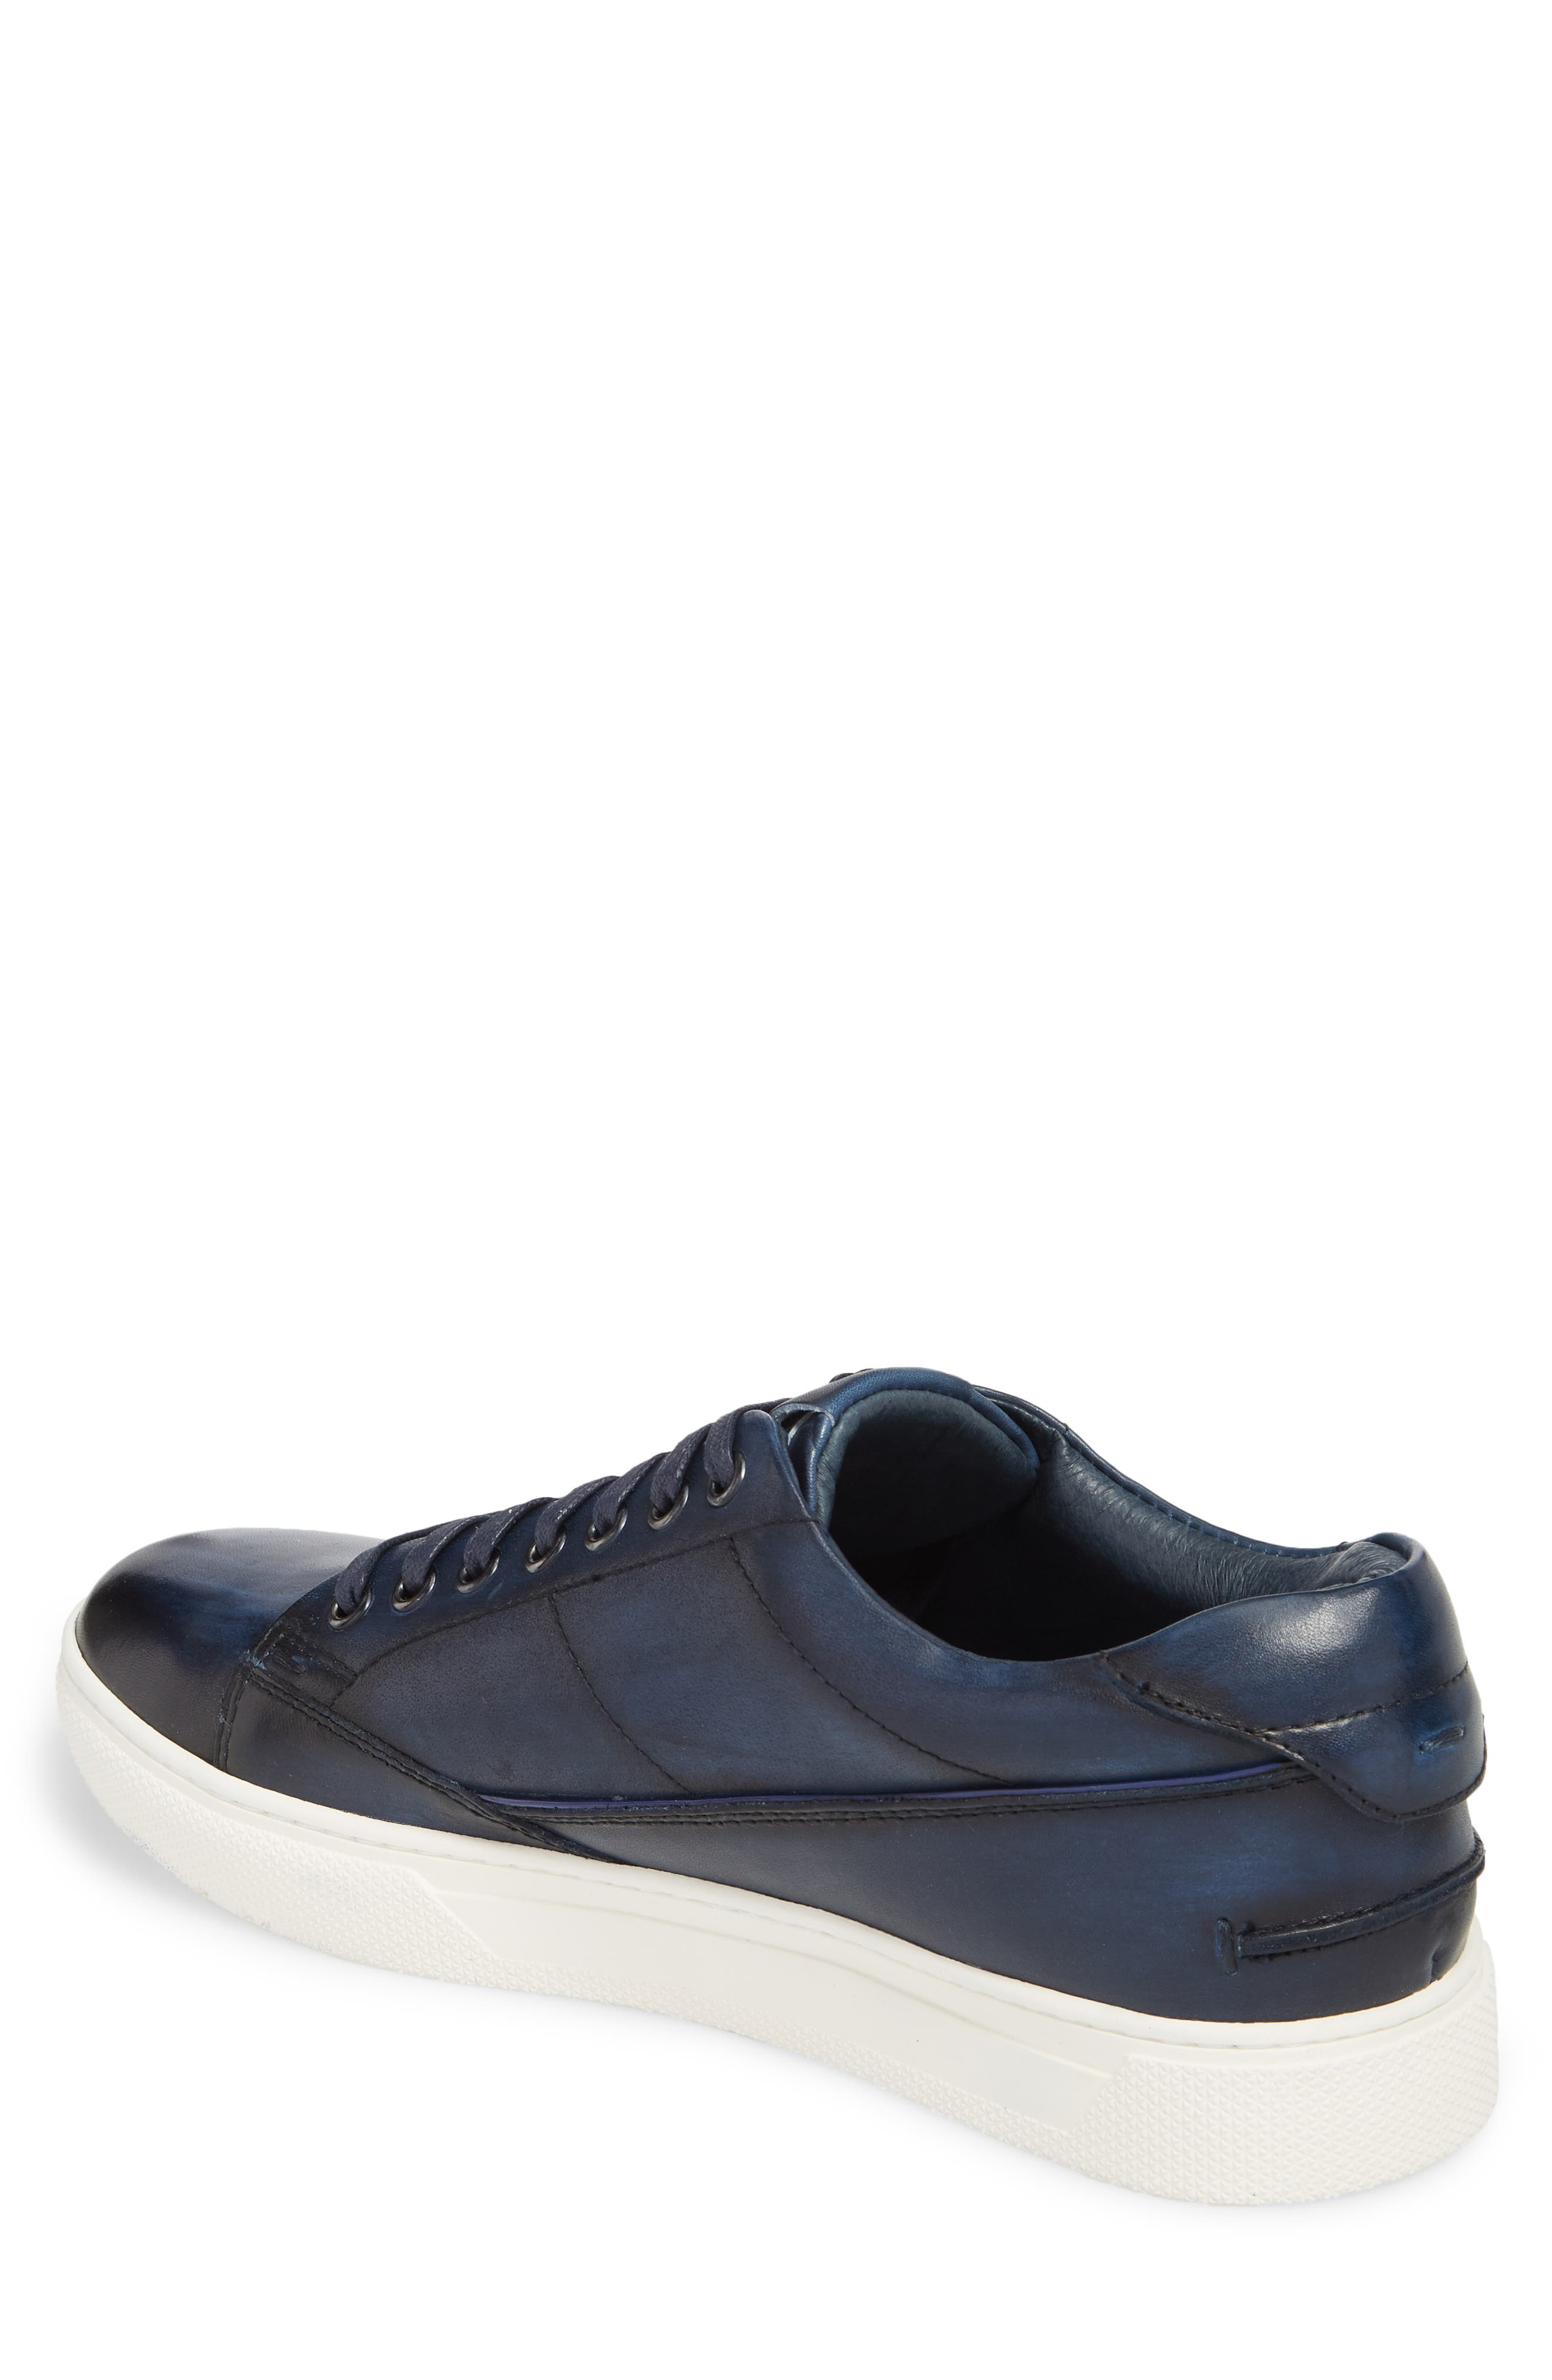 Sweeney Low Top Sneaker,                             Alternate thumbnail 2, color,                             NAVY LEATHER